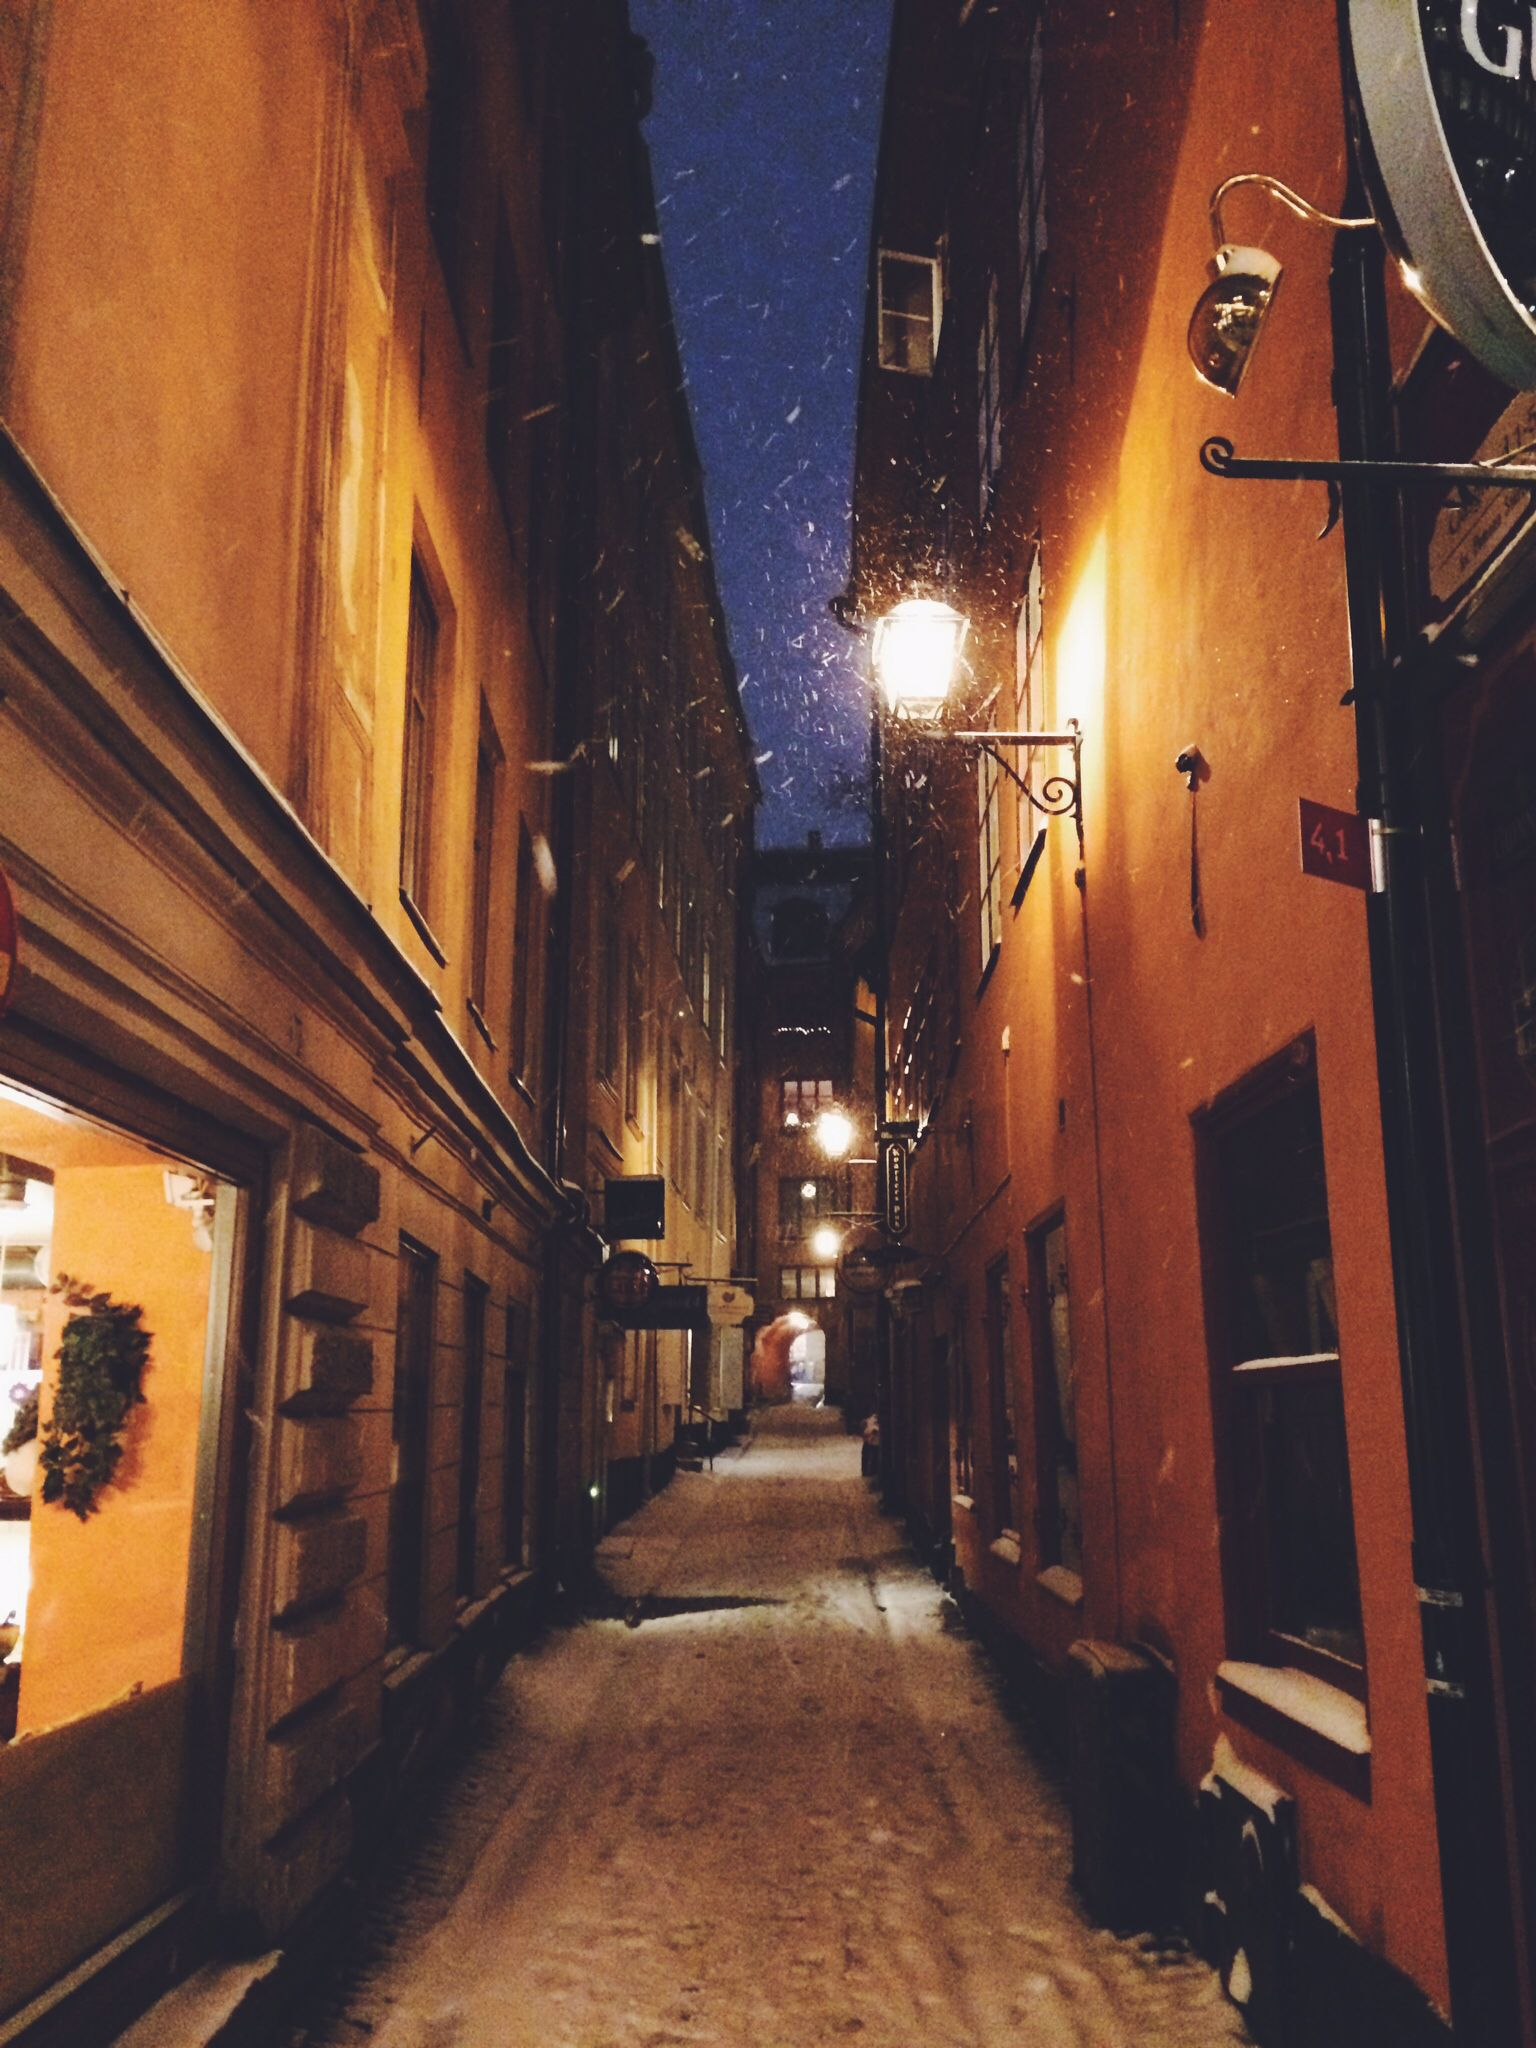 Typical street in old town of Stockholm. And typical evening, because it's about 4:30 p.m.